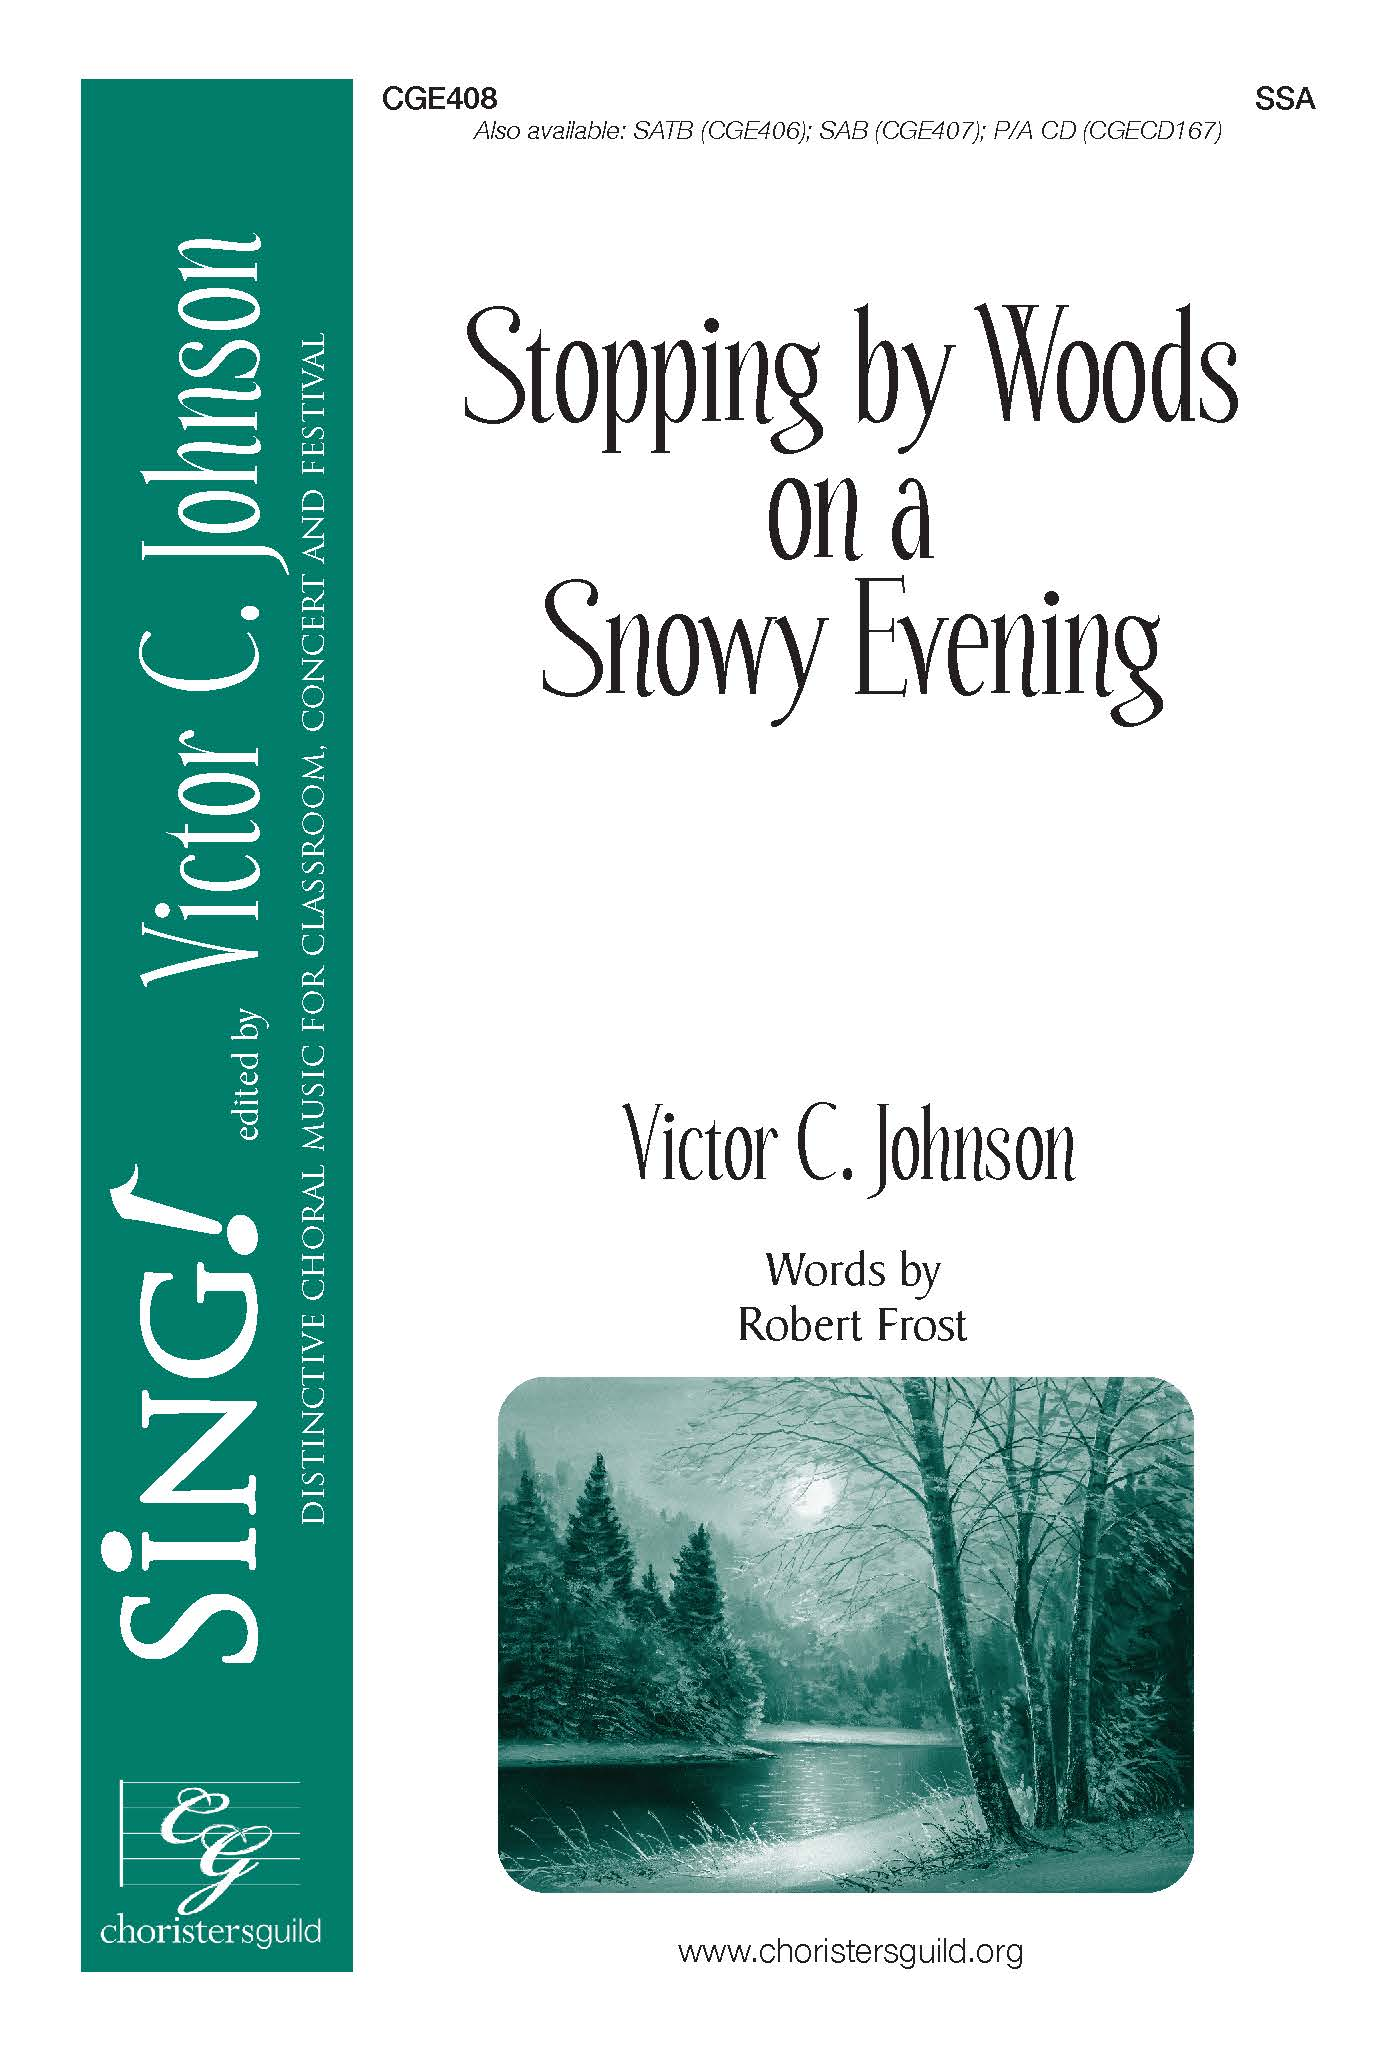 Stopping by Woods on a Snowy Evening - SSA